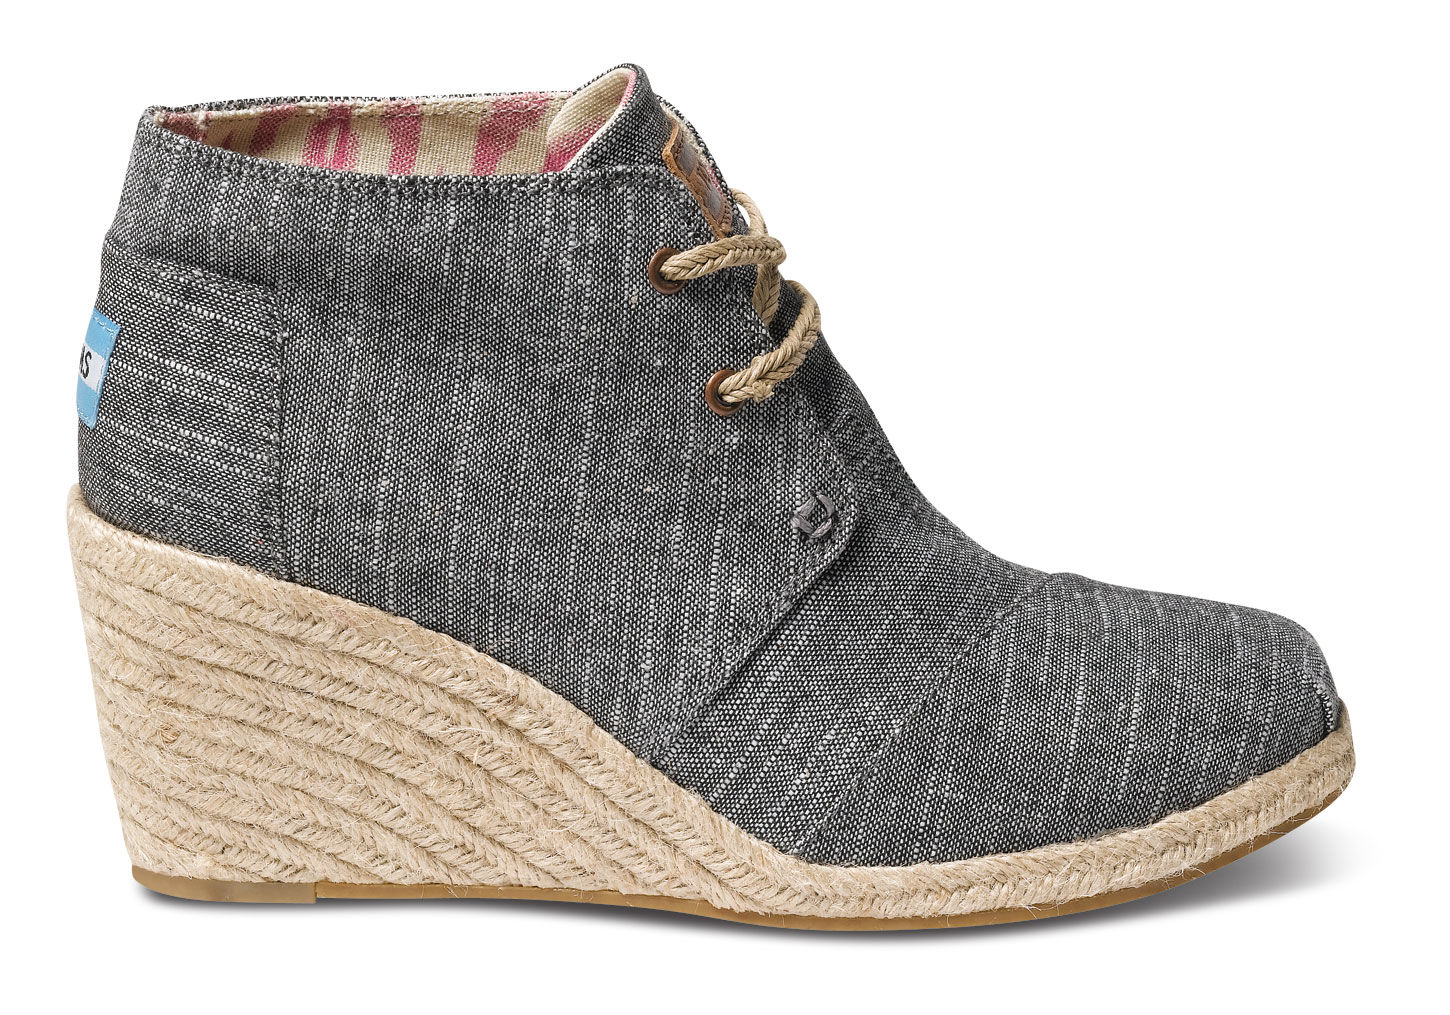 d7cdcfffb769 TOMS Chambray Womens Desert Wedges in Black - Lyst